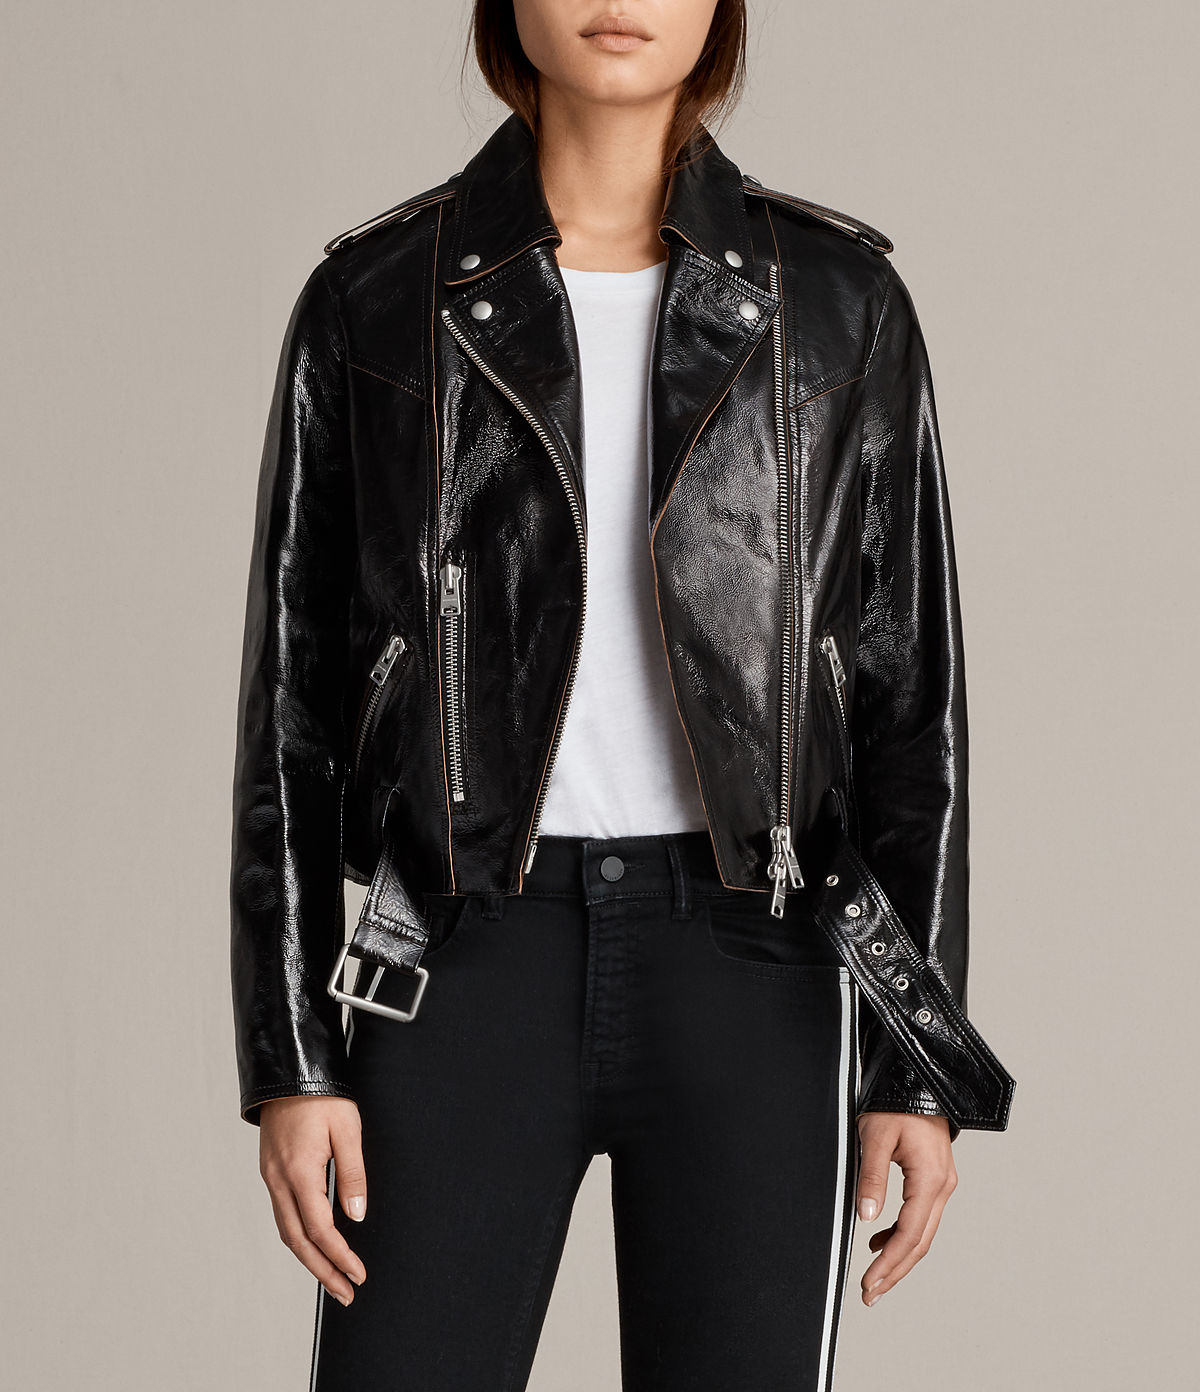 rigby-payton-leather-biker-jacket